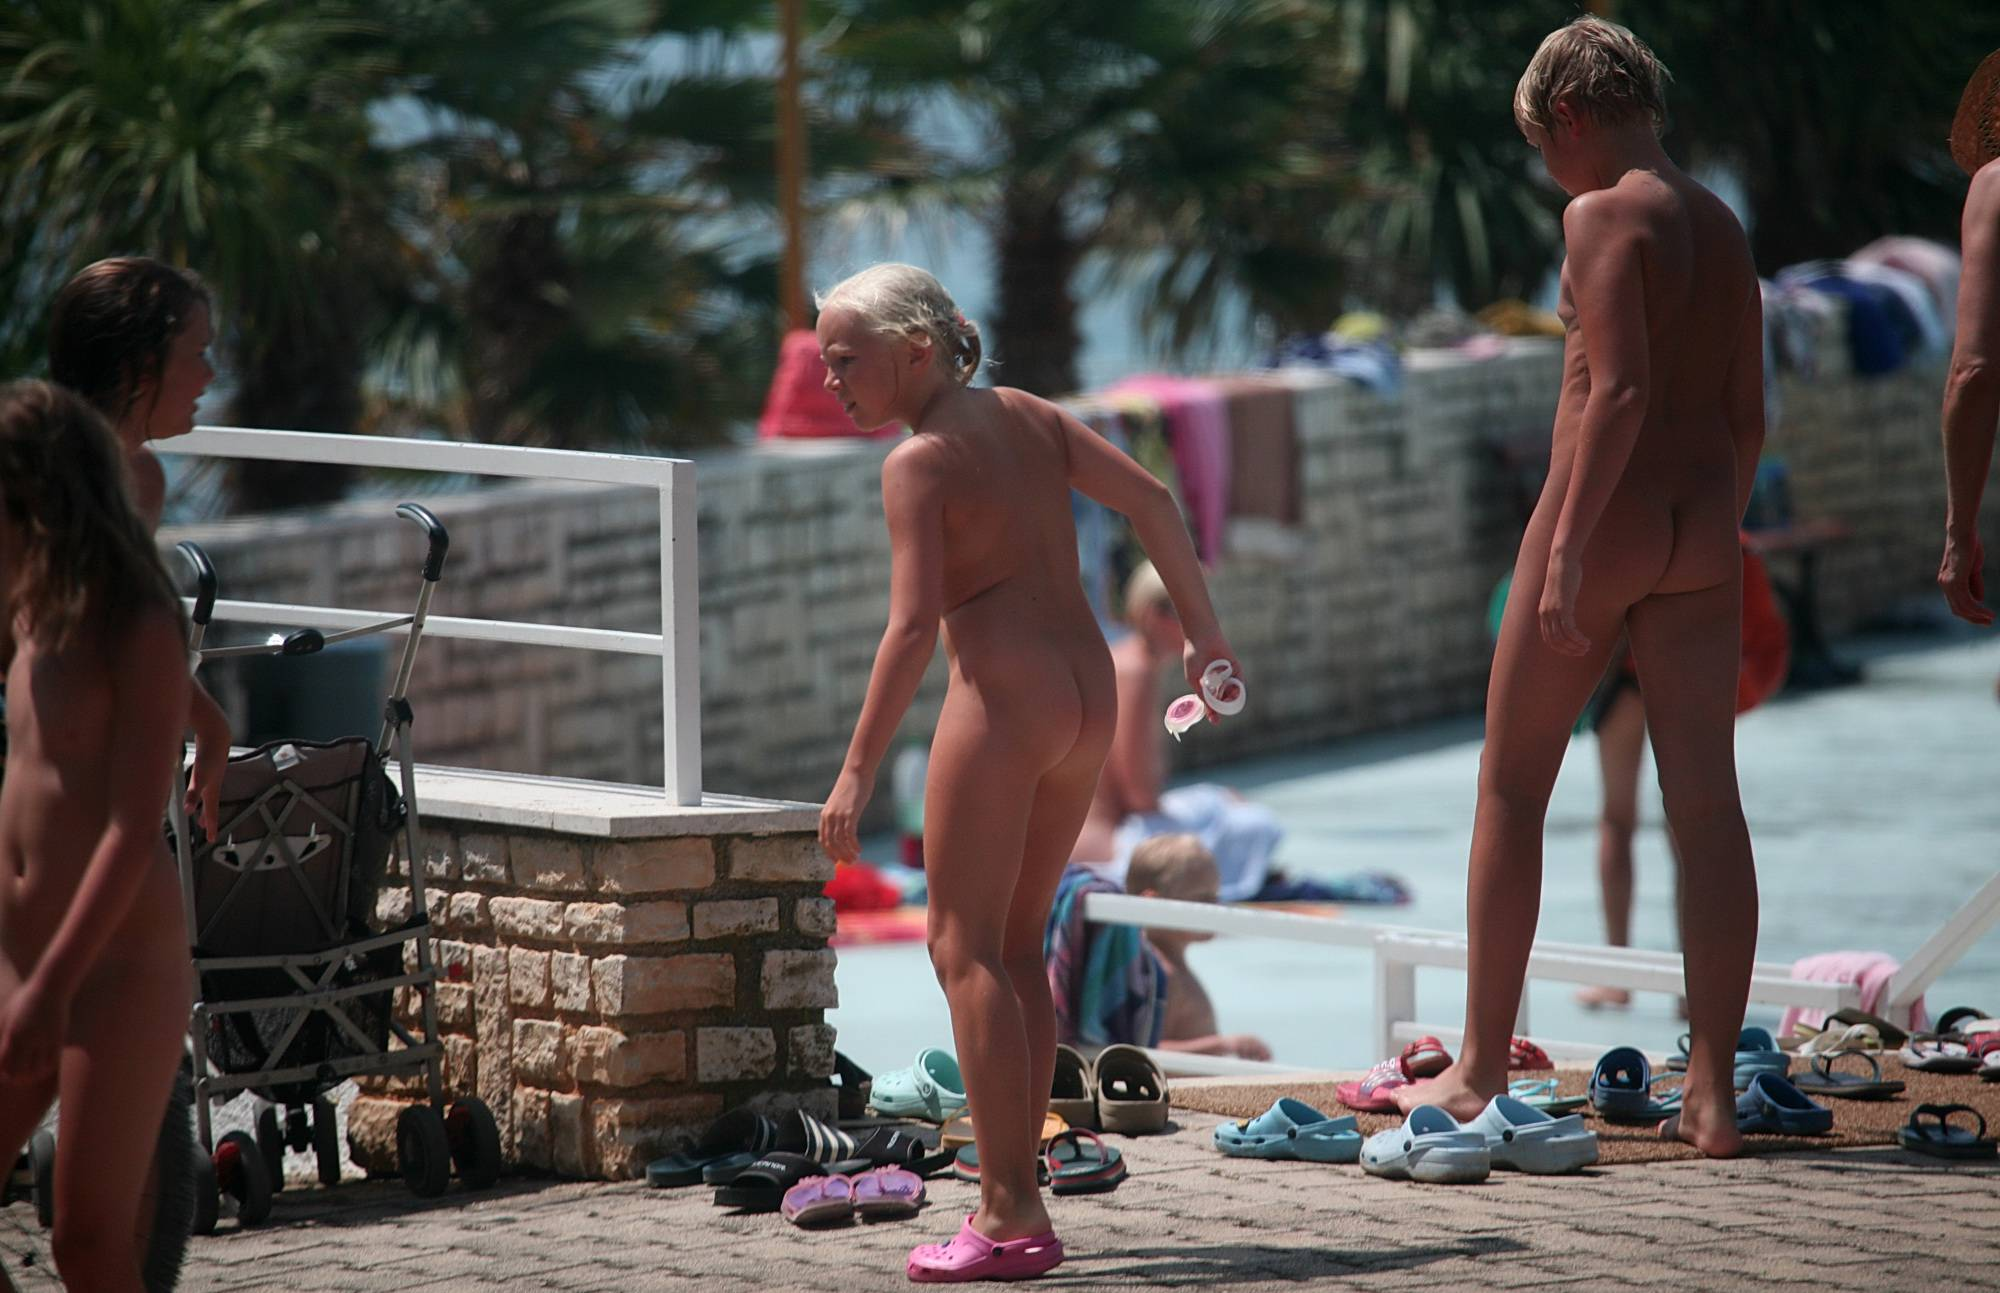 Nudist Pictures Swim Pool Passerbys - 2